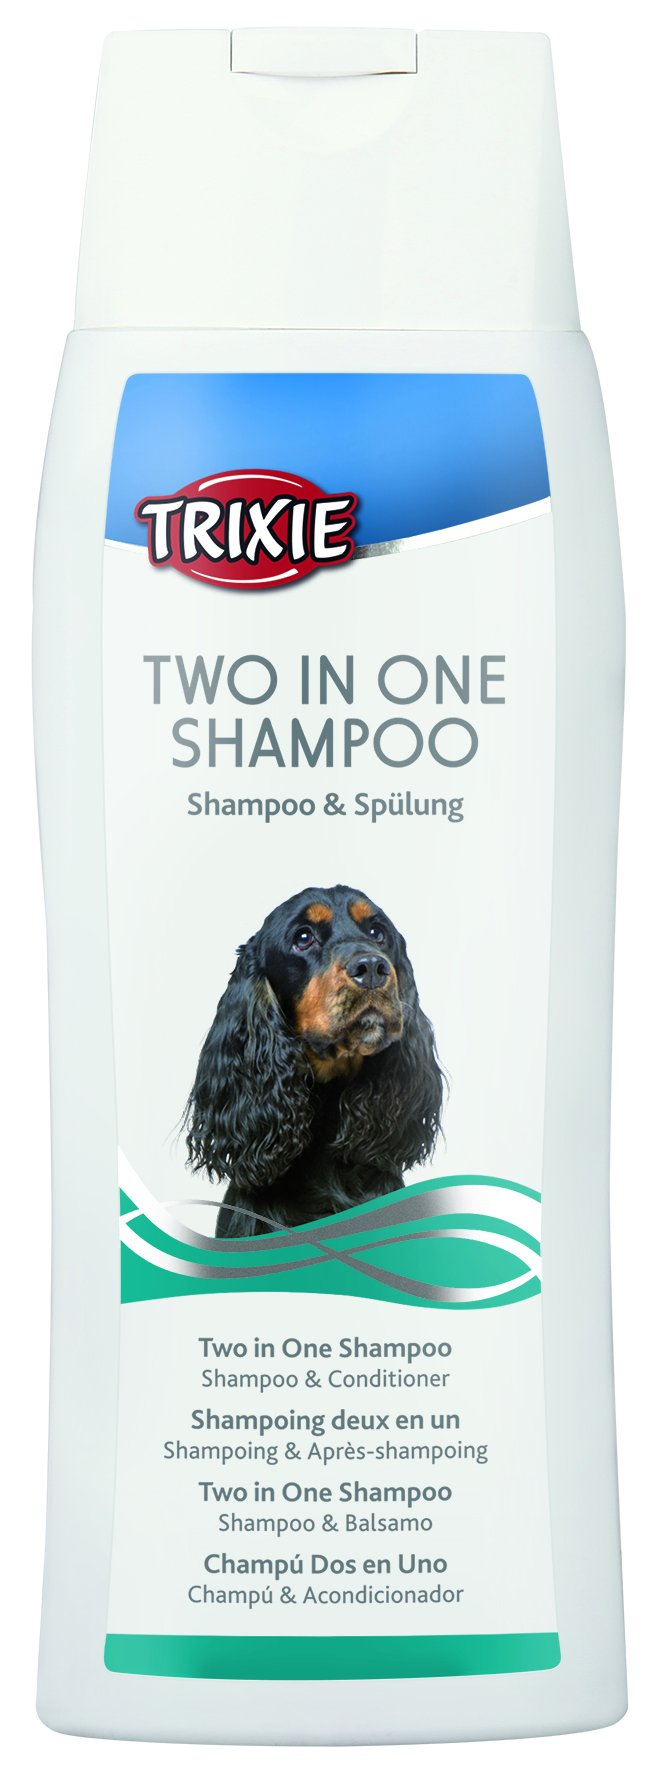 29197 Two in One shampoo, 250 ml